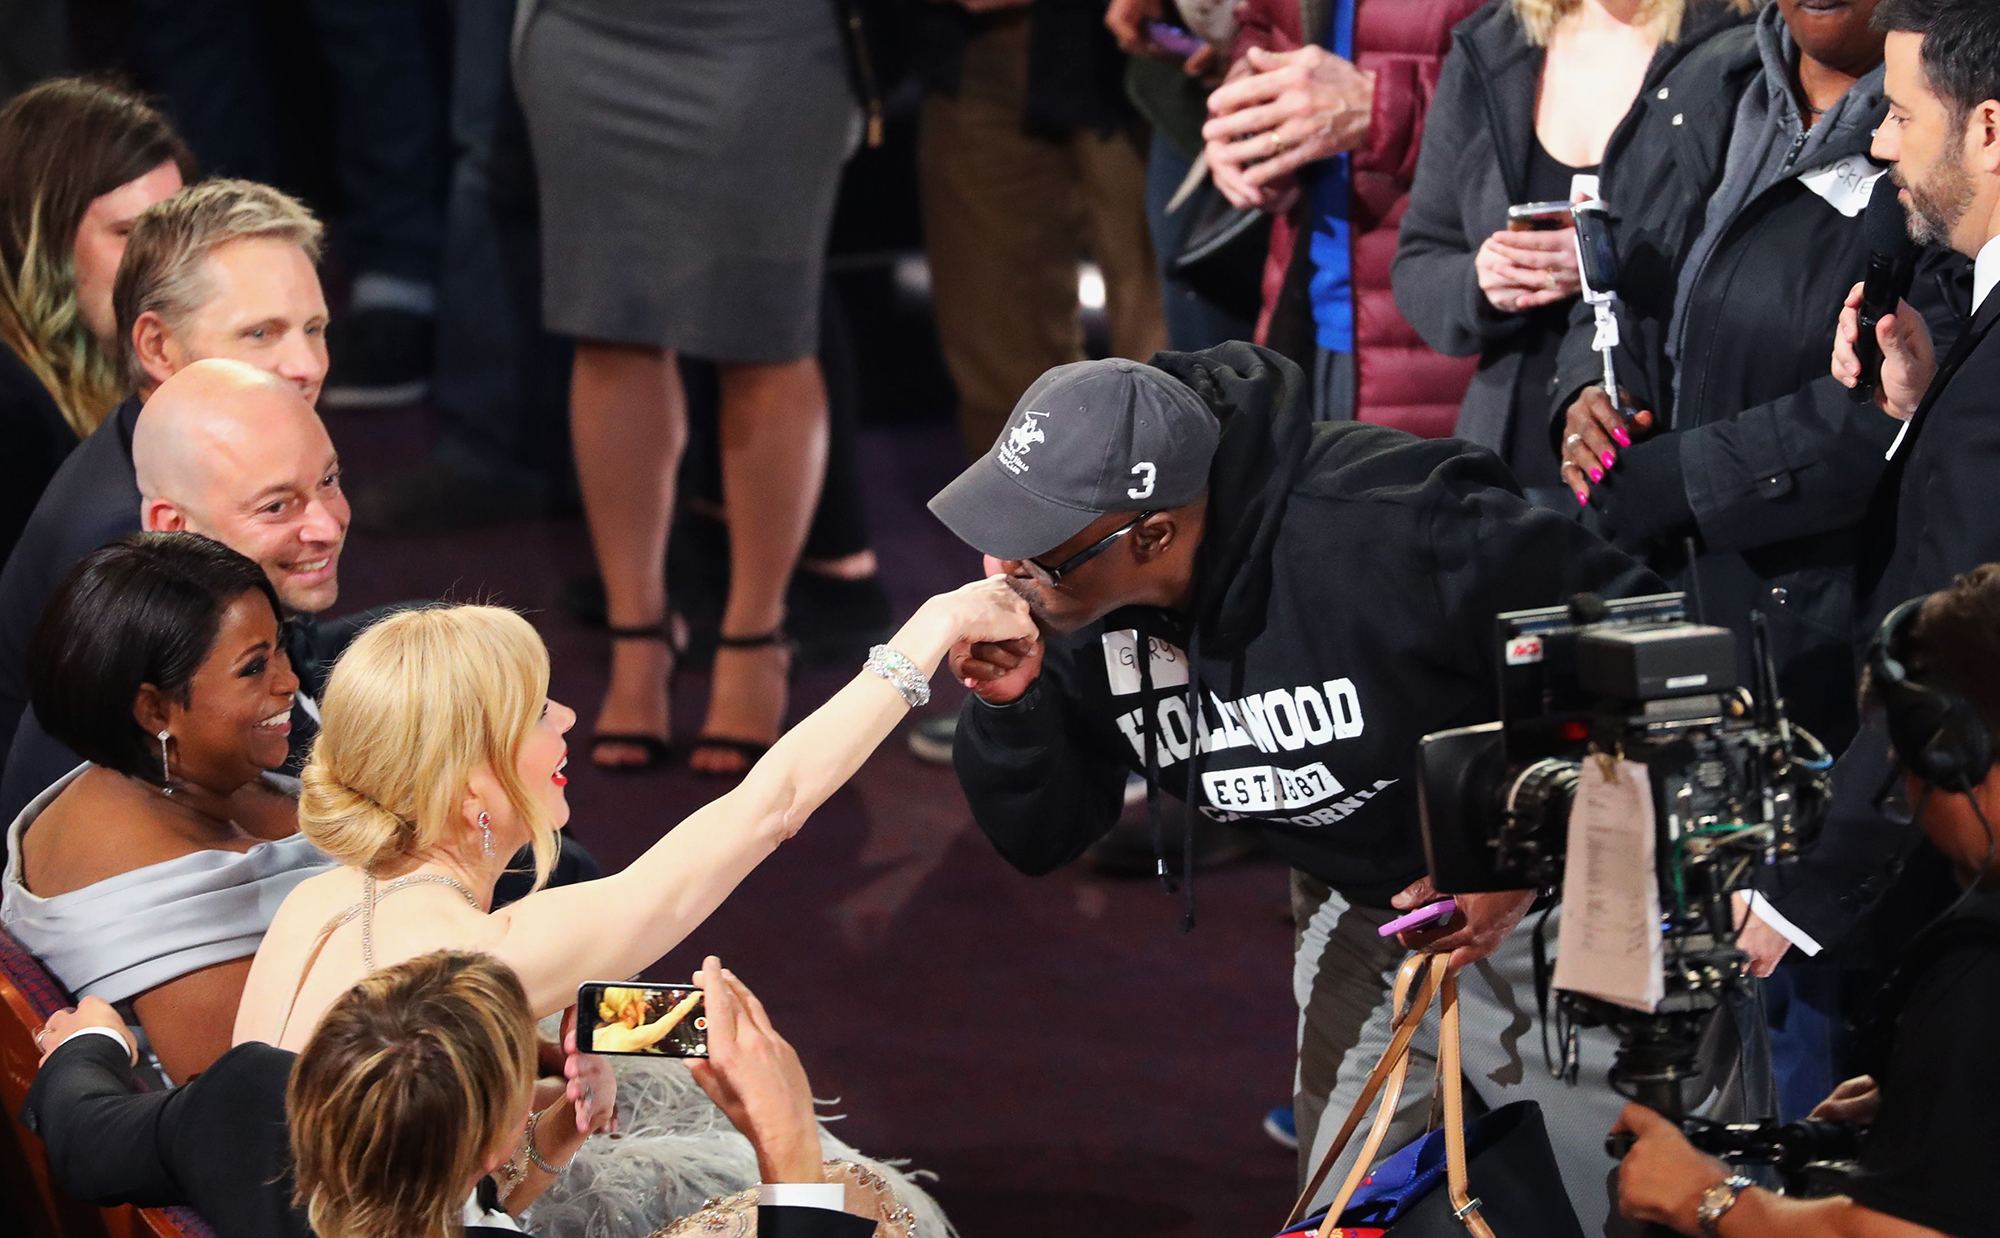 Gary from Chicago  kisses the hand of Nicole Kidman during the 89th Academy Awards, on Feb. 26, 2017 in Hollywood, Calif.